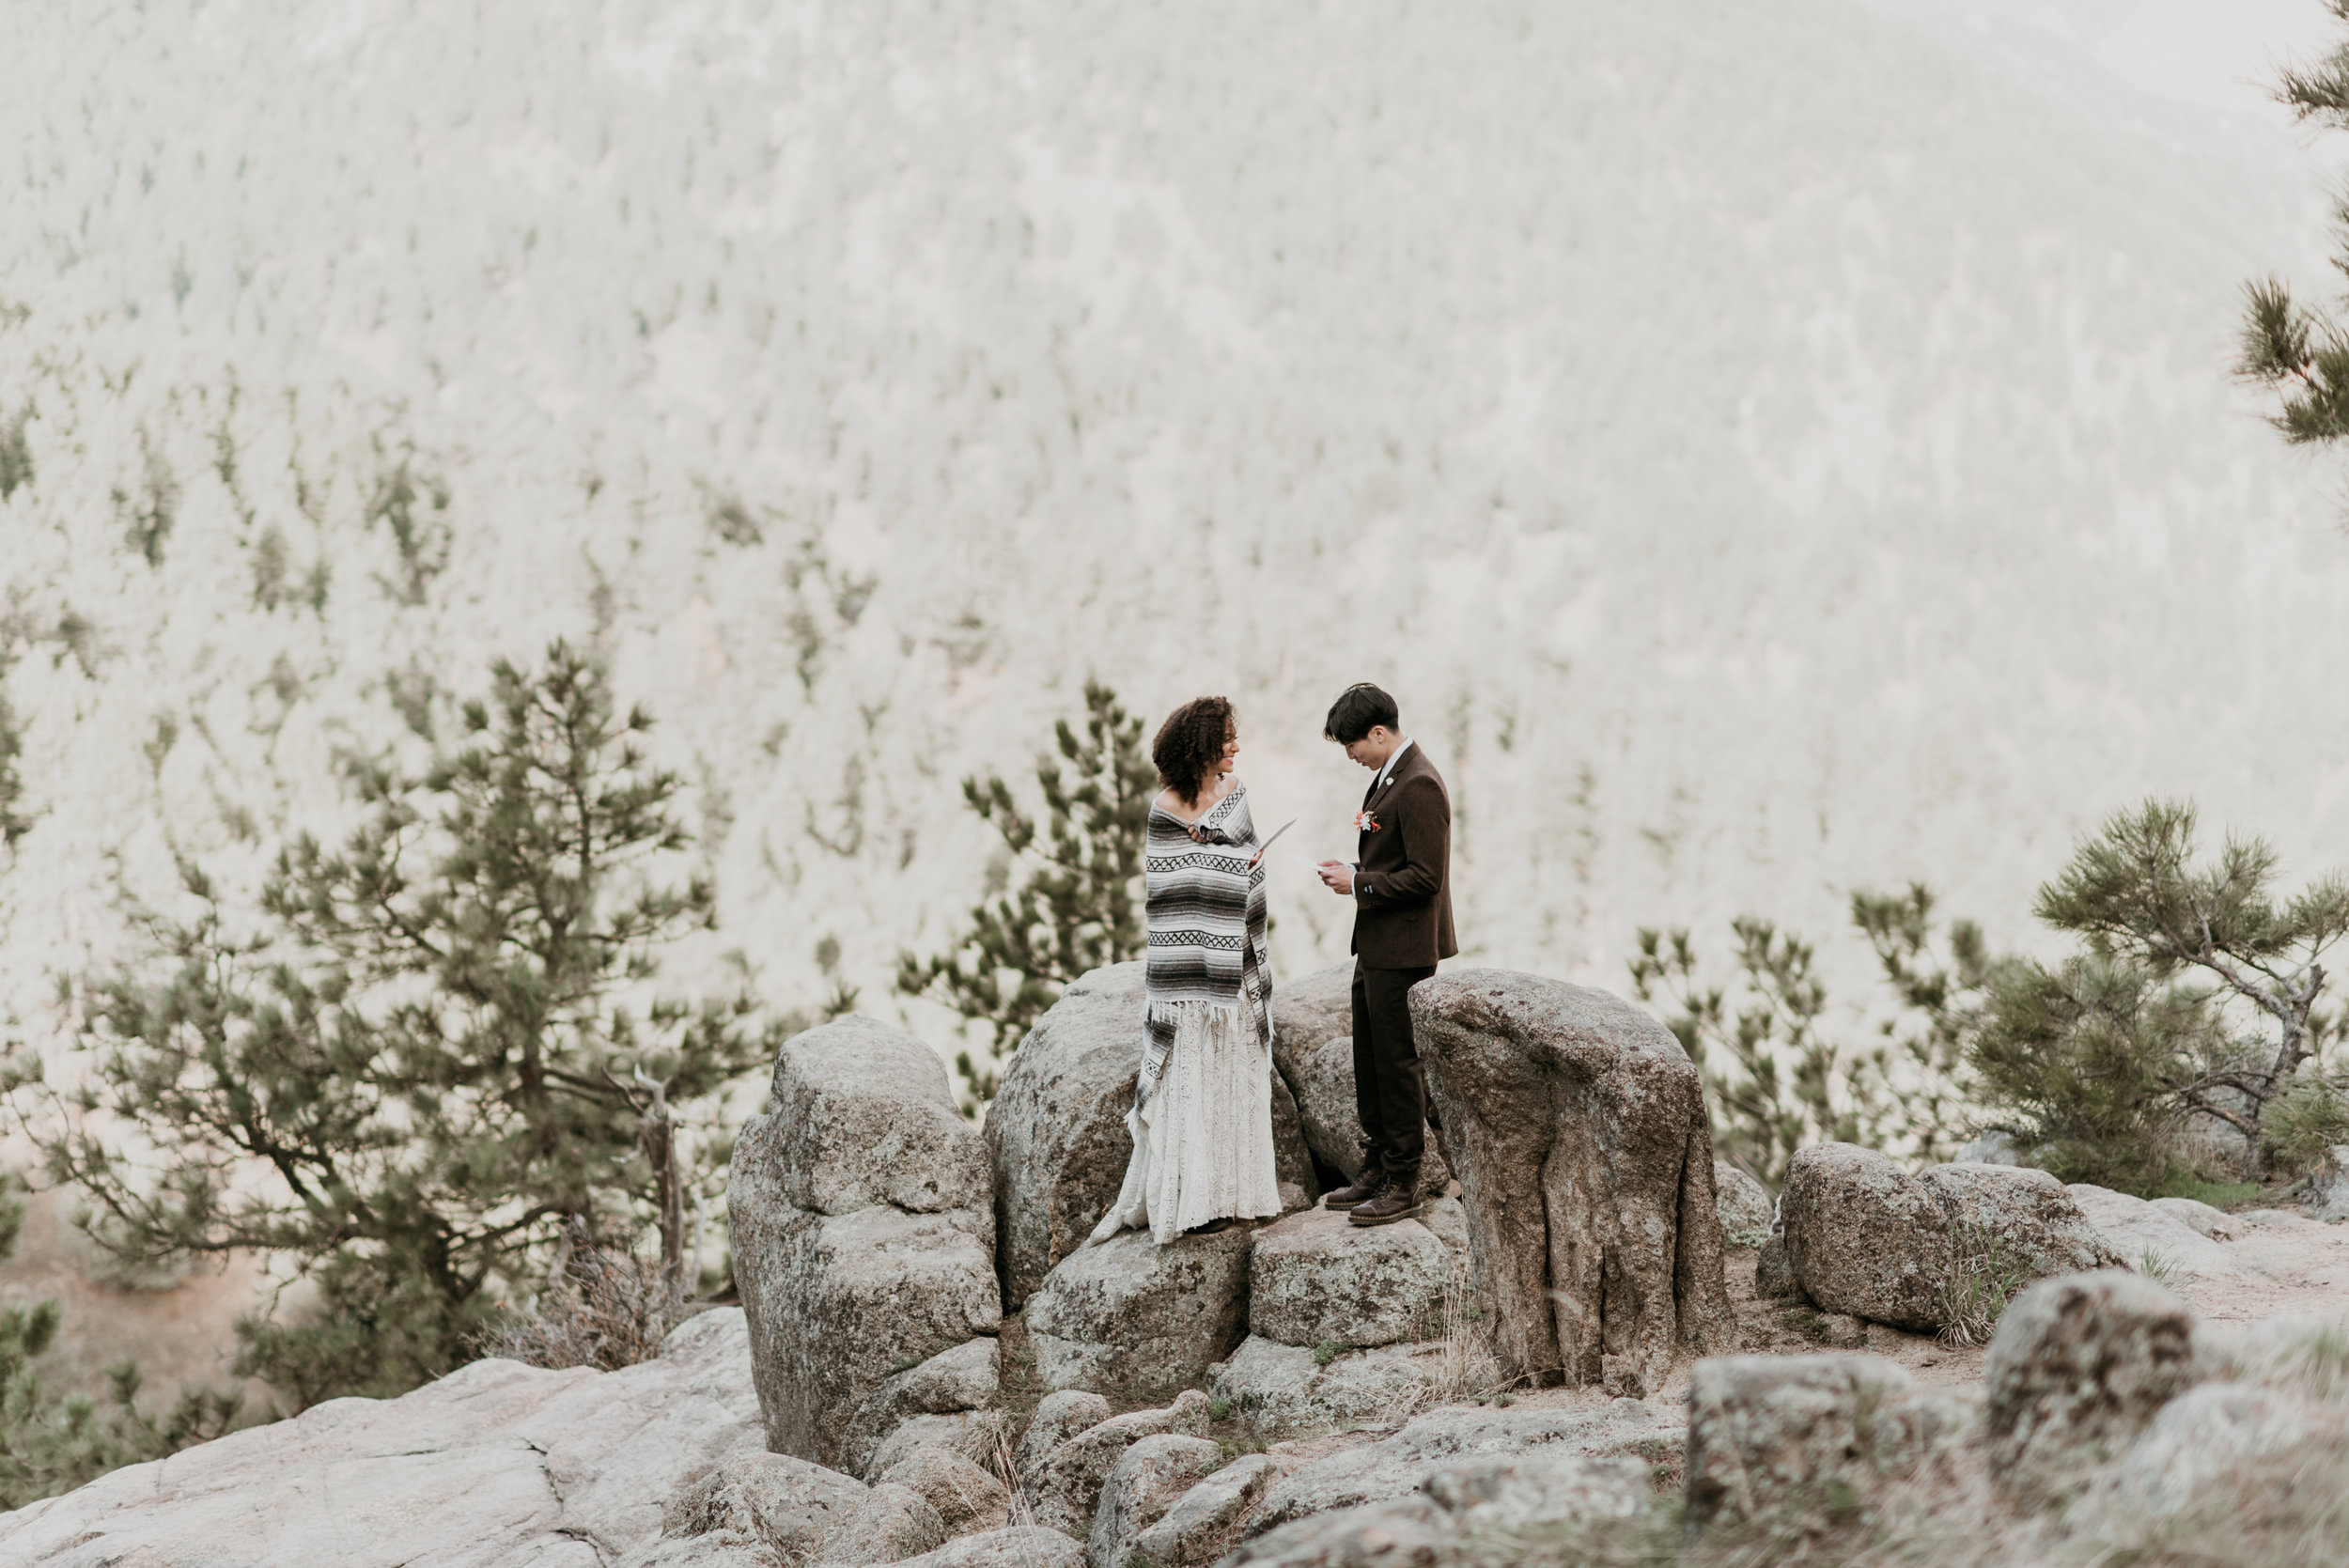 The couple exchanges vows on a sunrise overlook in Boulder, Colorado.